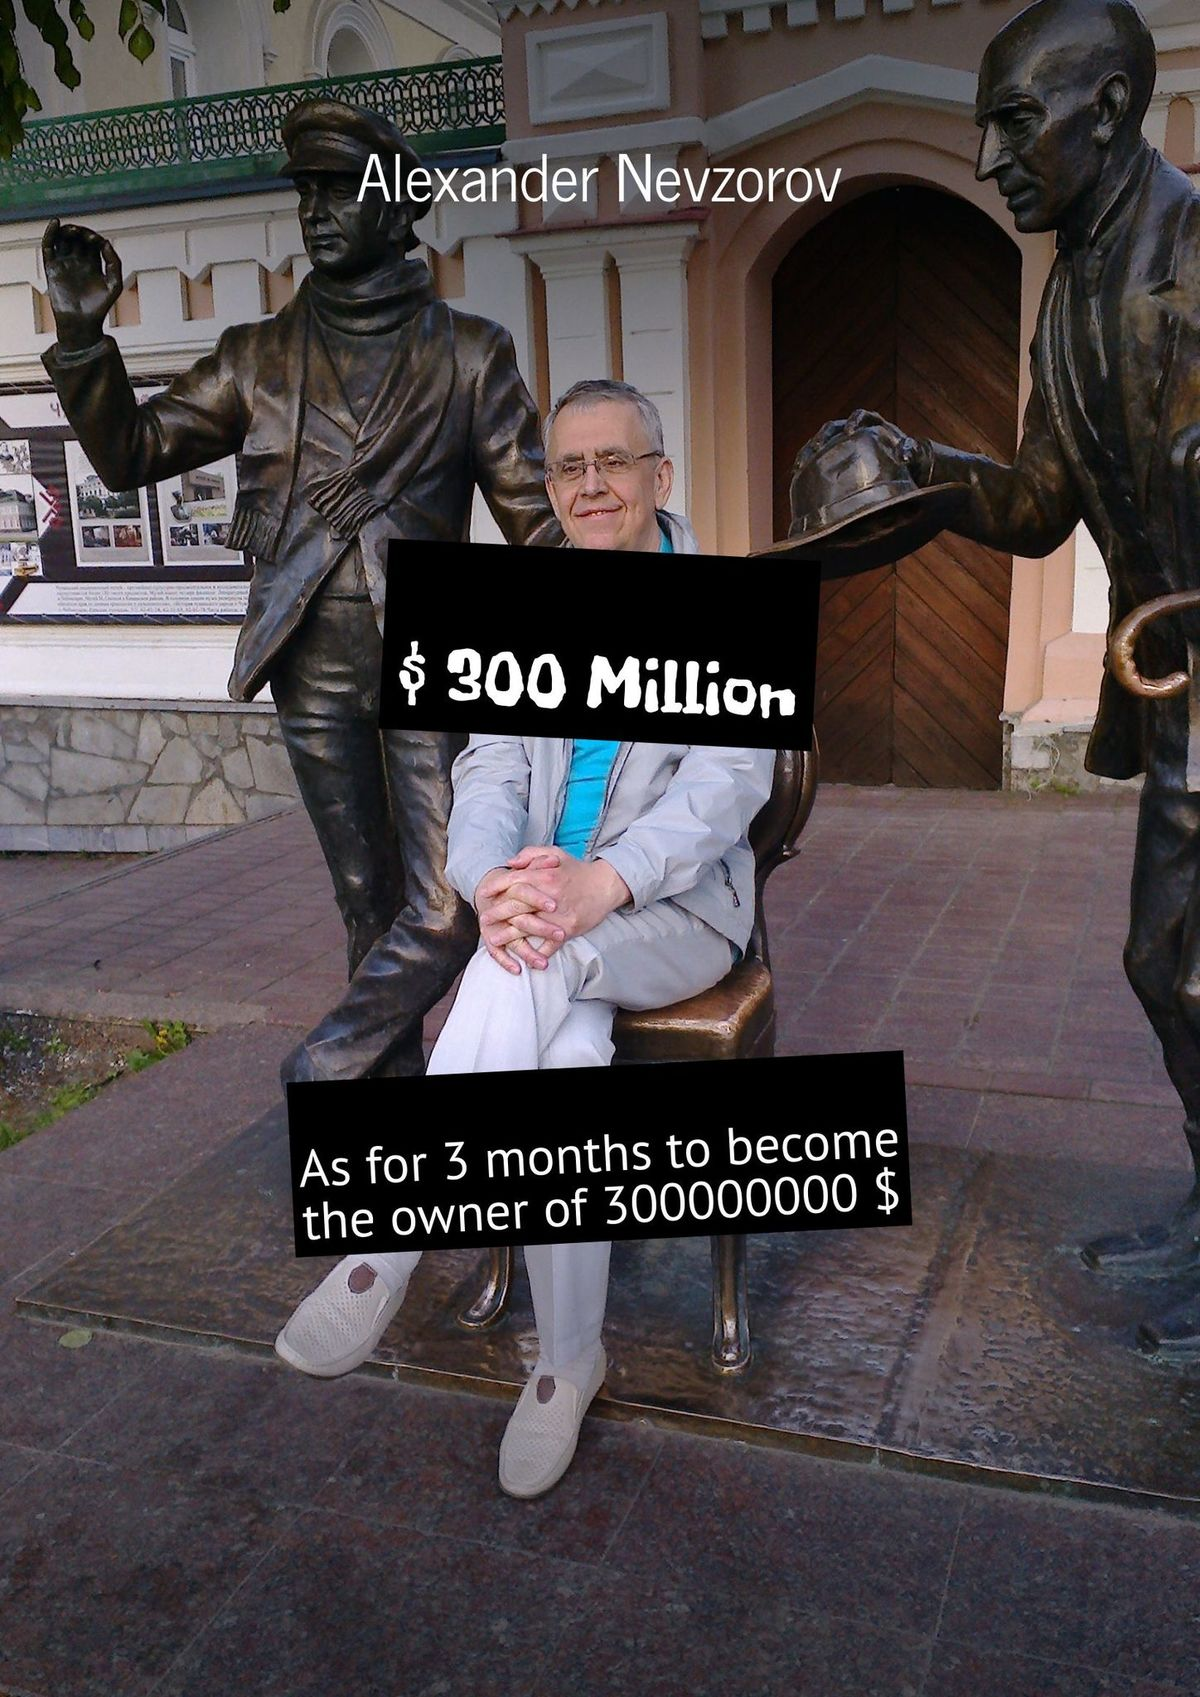 $ 300 Million. As for 3 months to become the owner of 300000000 $